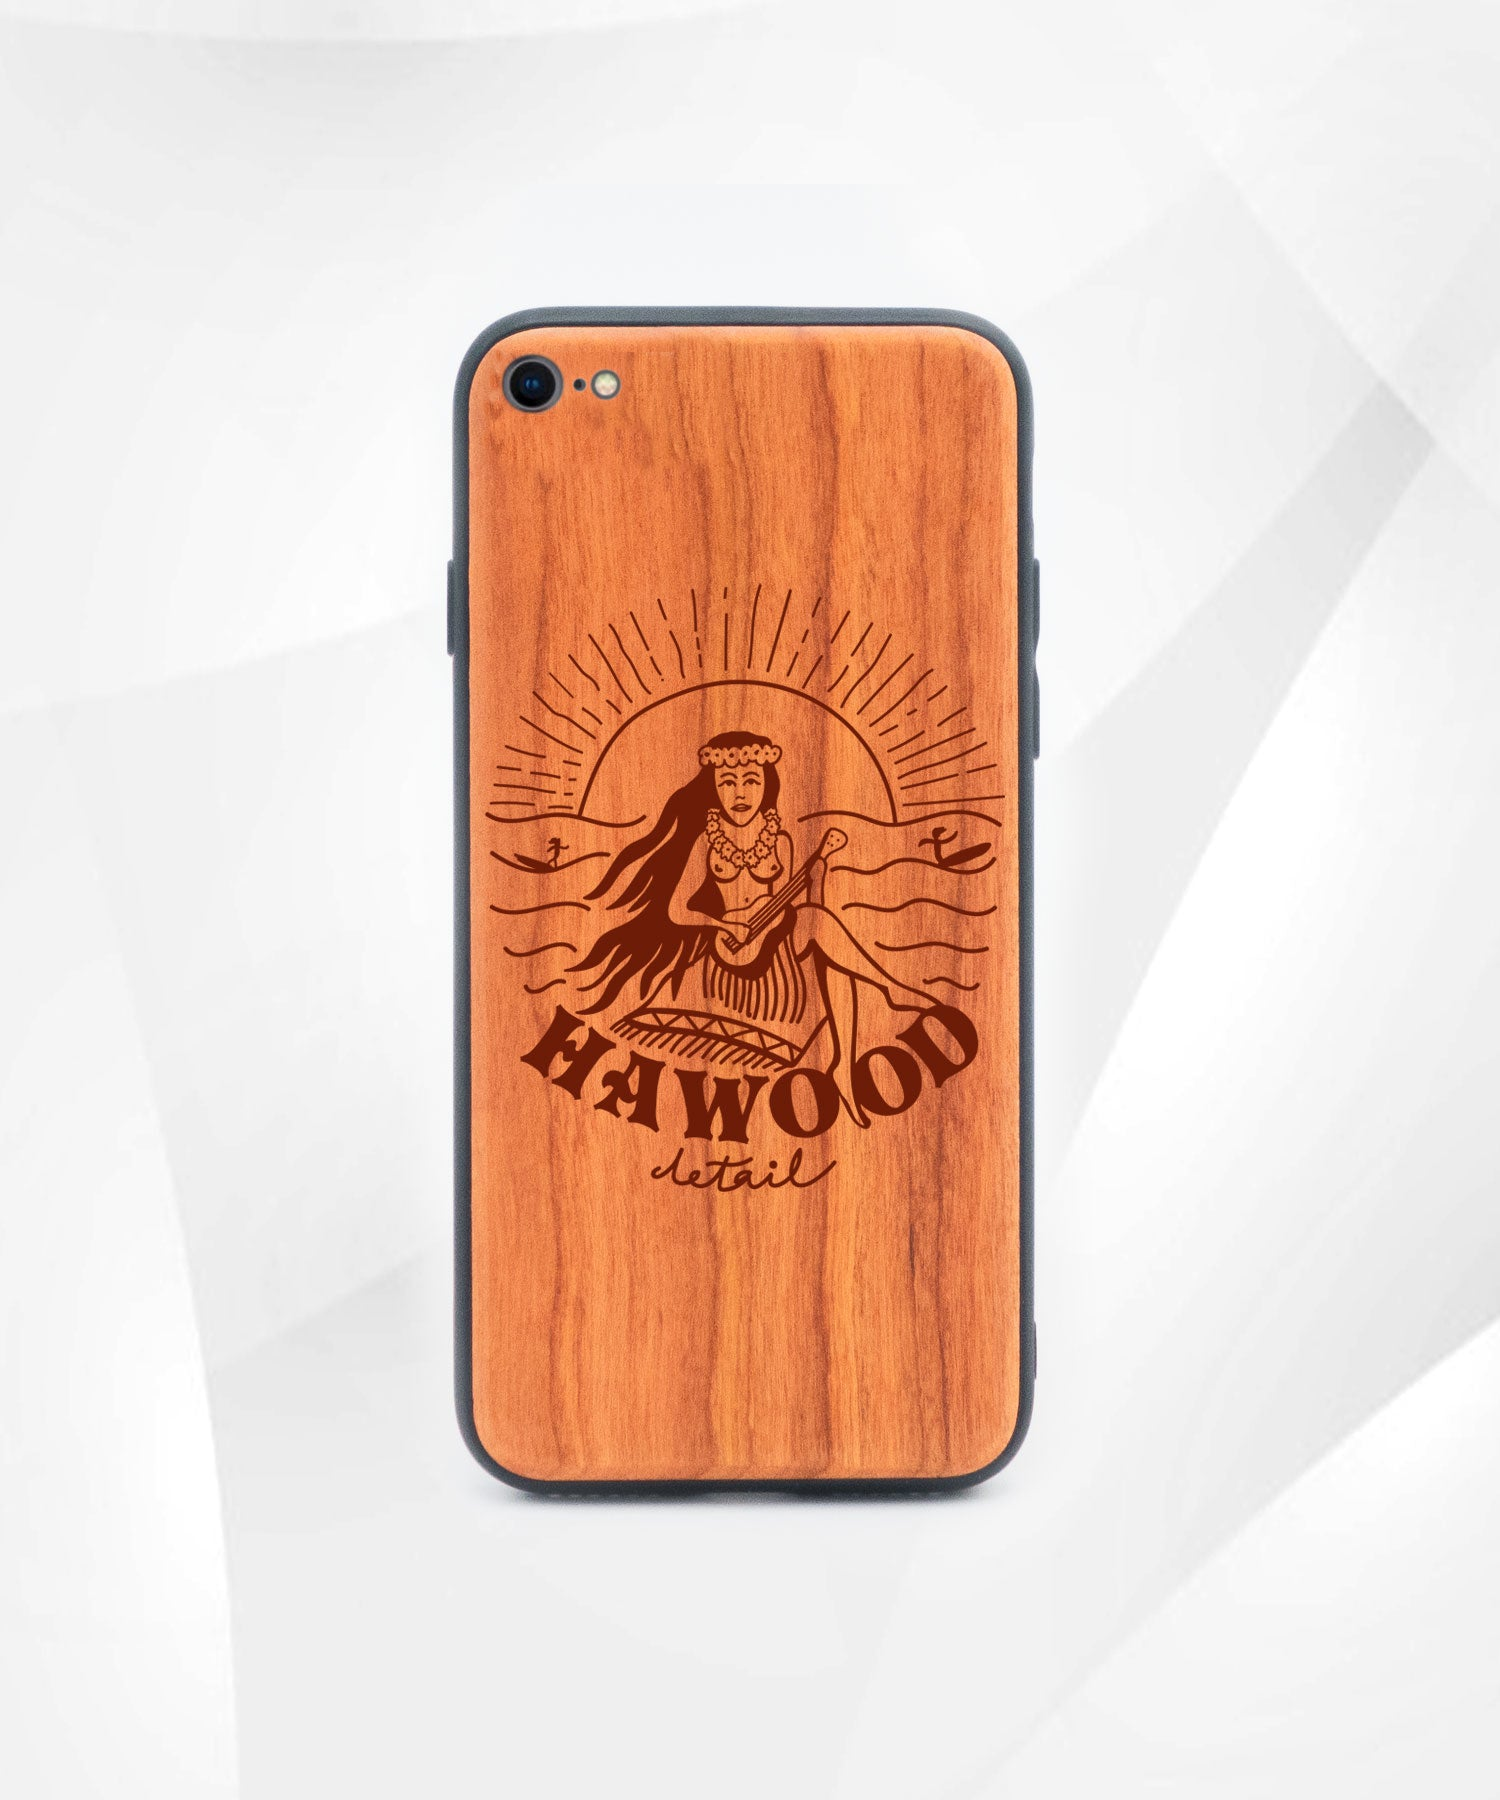 Hawood - iPhone 6 Plus